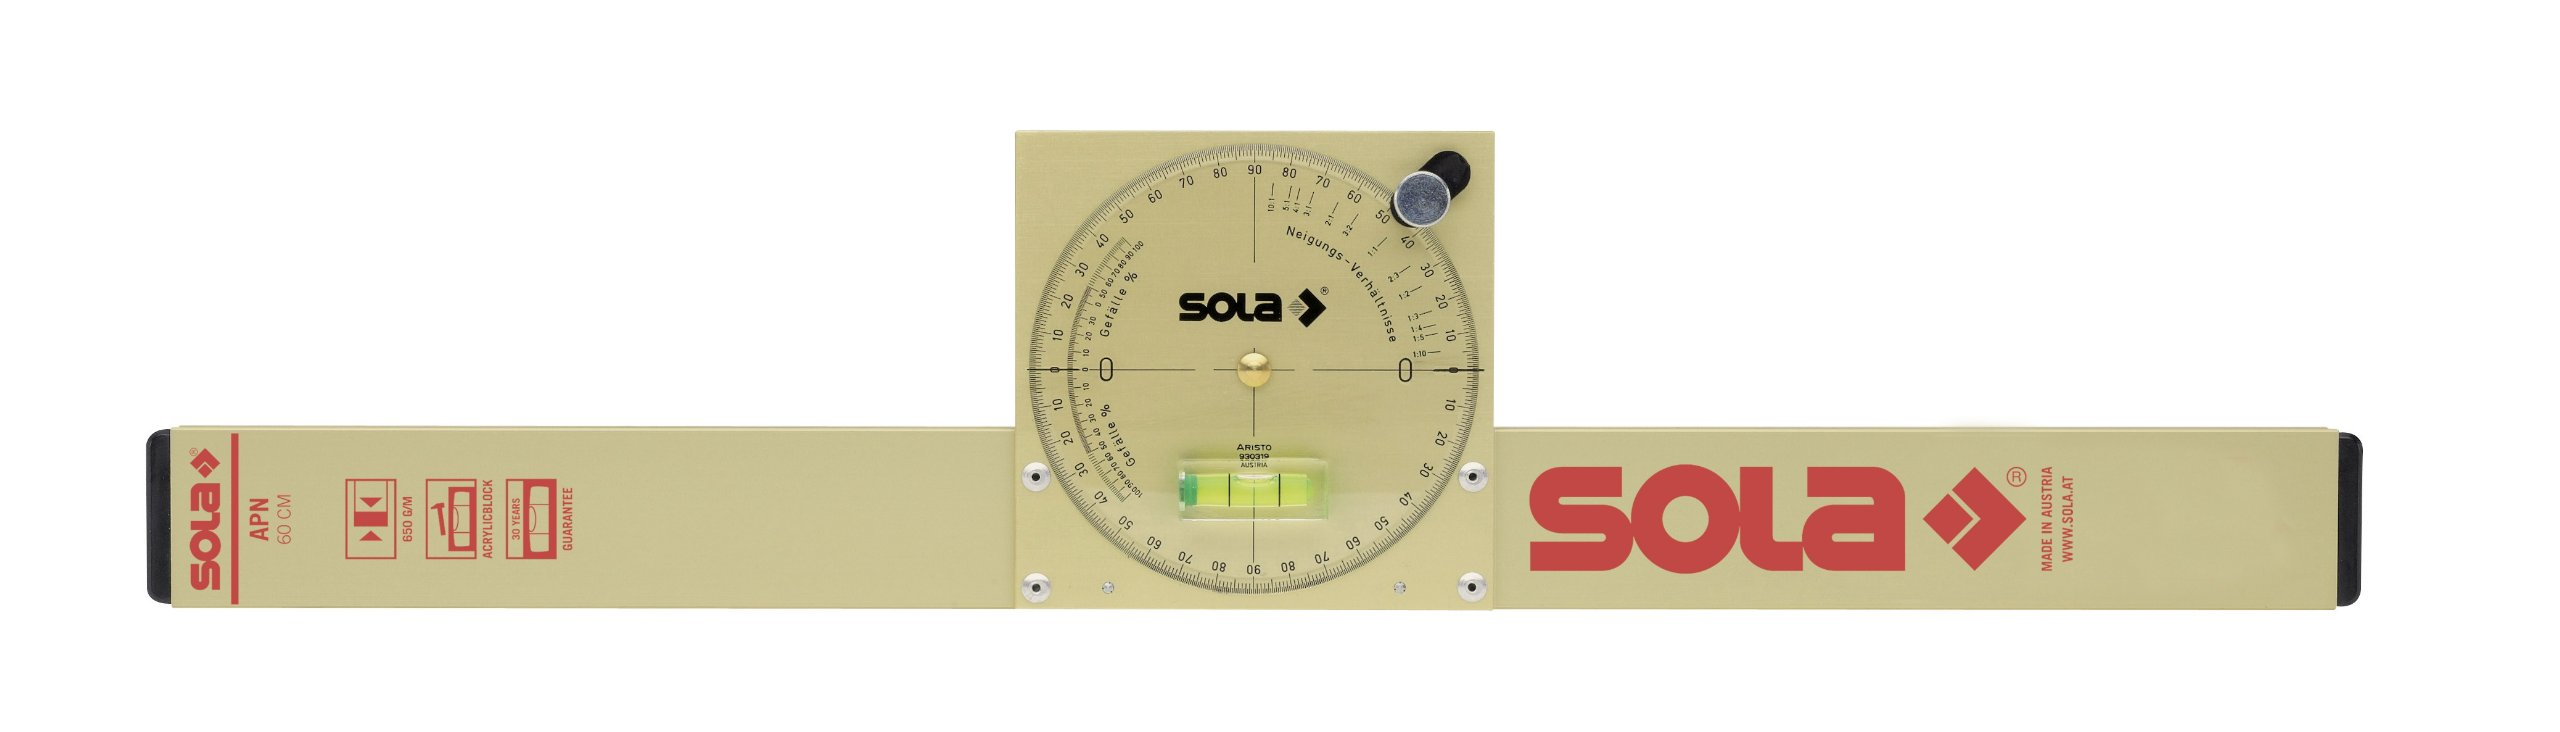 Sola Magnetic Analog Inclinometer w/Carry Bag - NAM 50 T by Sola Levels